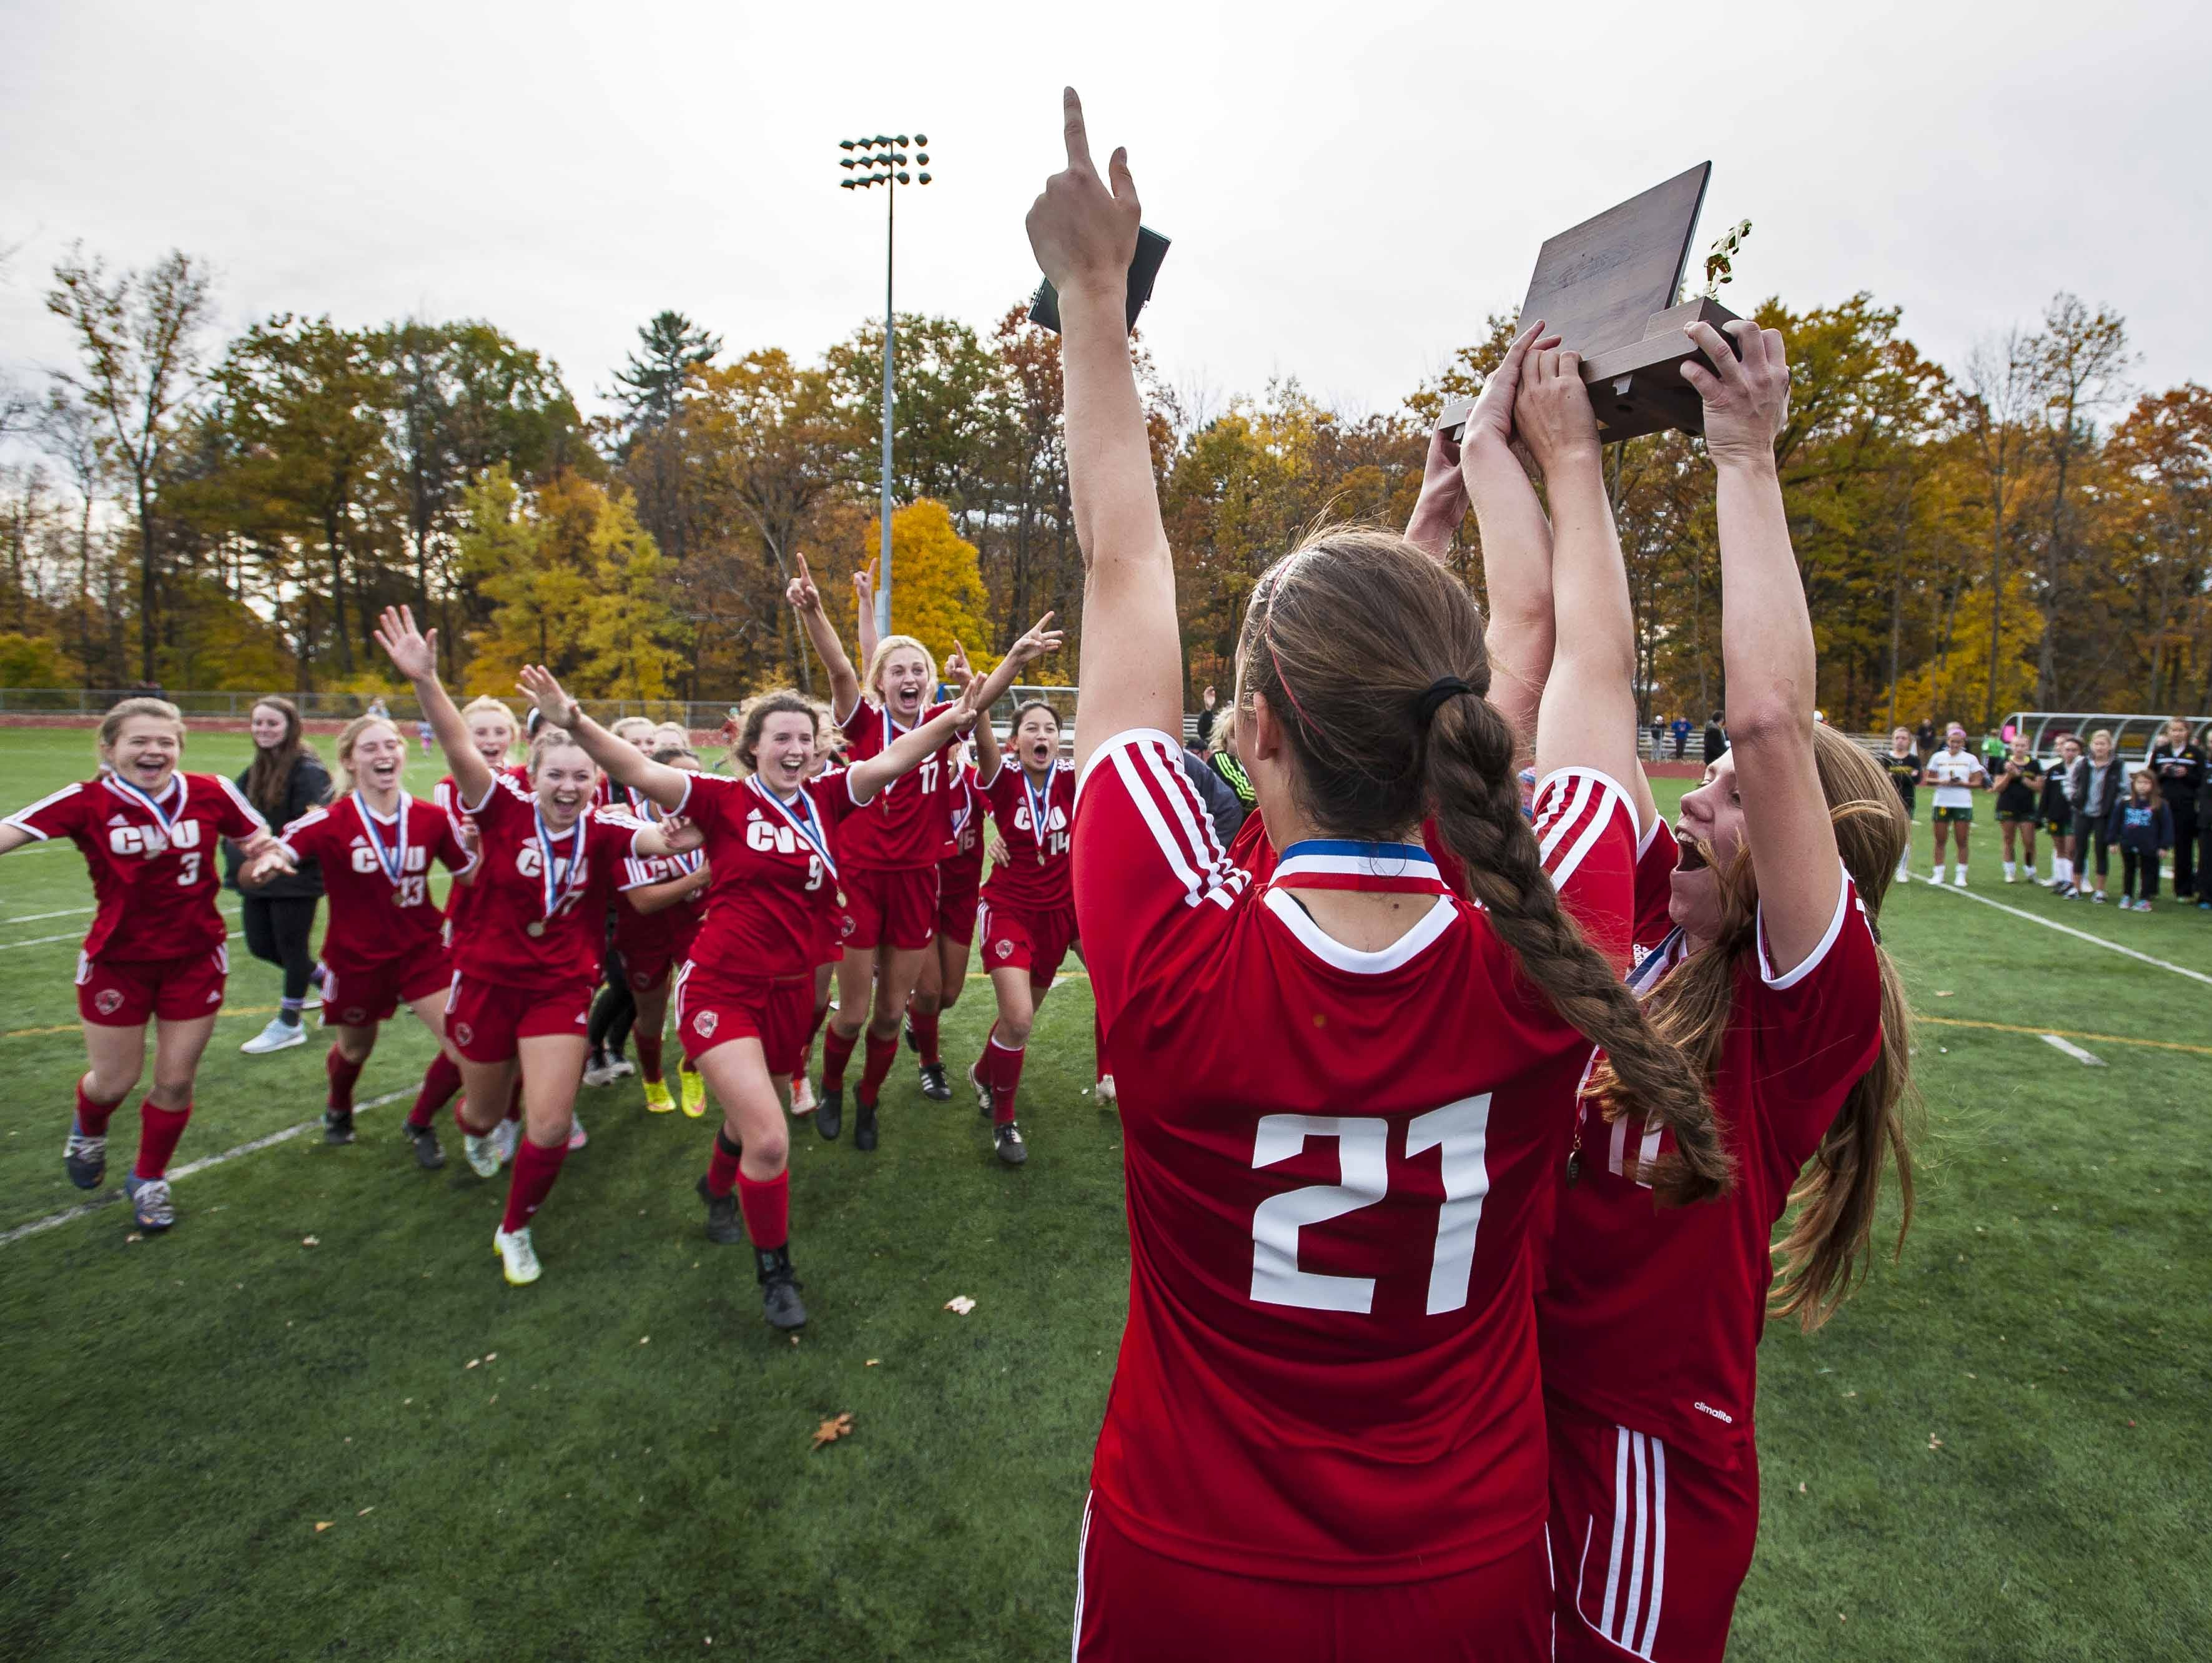 CVU celebrates its victory over Burr and Burton in the Division I girls soccer championship at Burlington High School on Saturday.